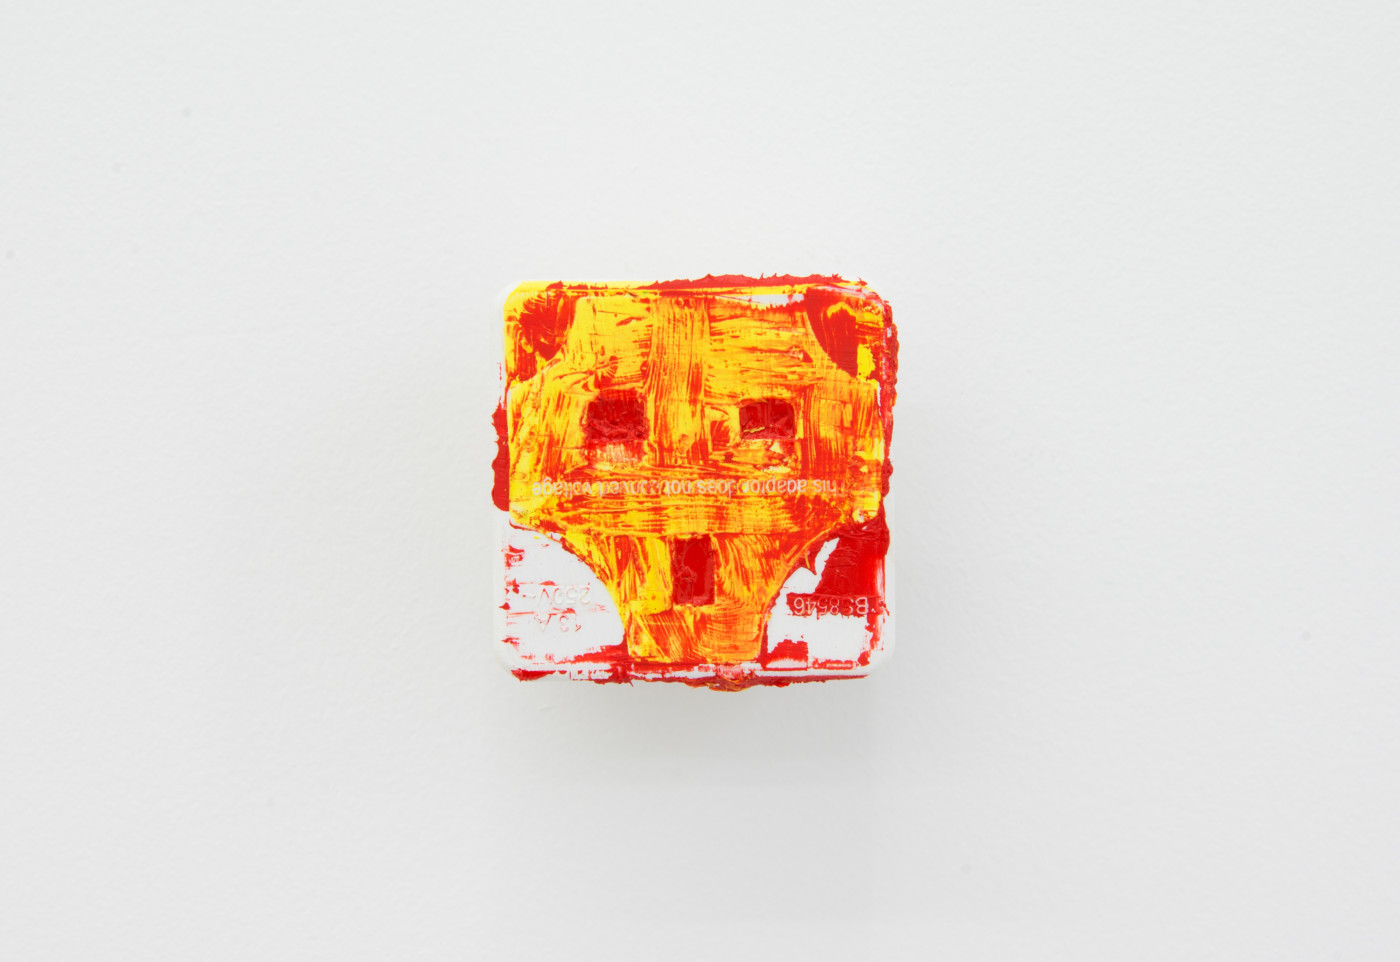 KEITH FARQUHAR  Scream #8 , 2019 Oil on travel adaptor 6 x 6 x 4 cm / 2.3 x 2.3 x 1.5 in - High Art Gallery Paris